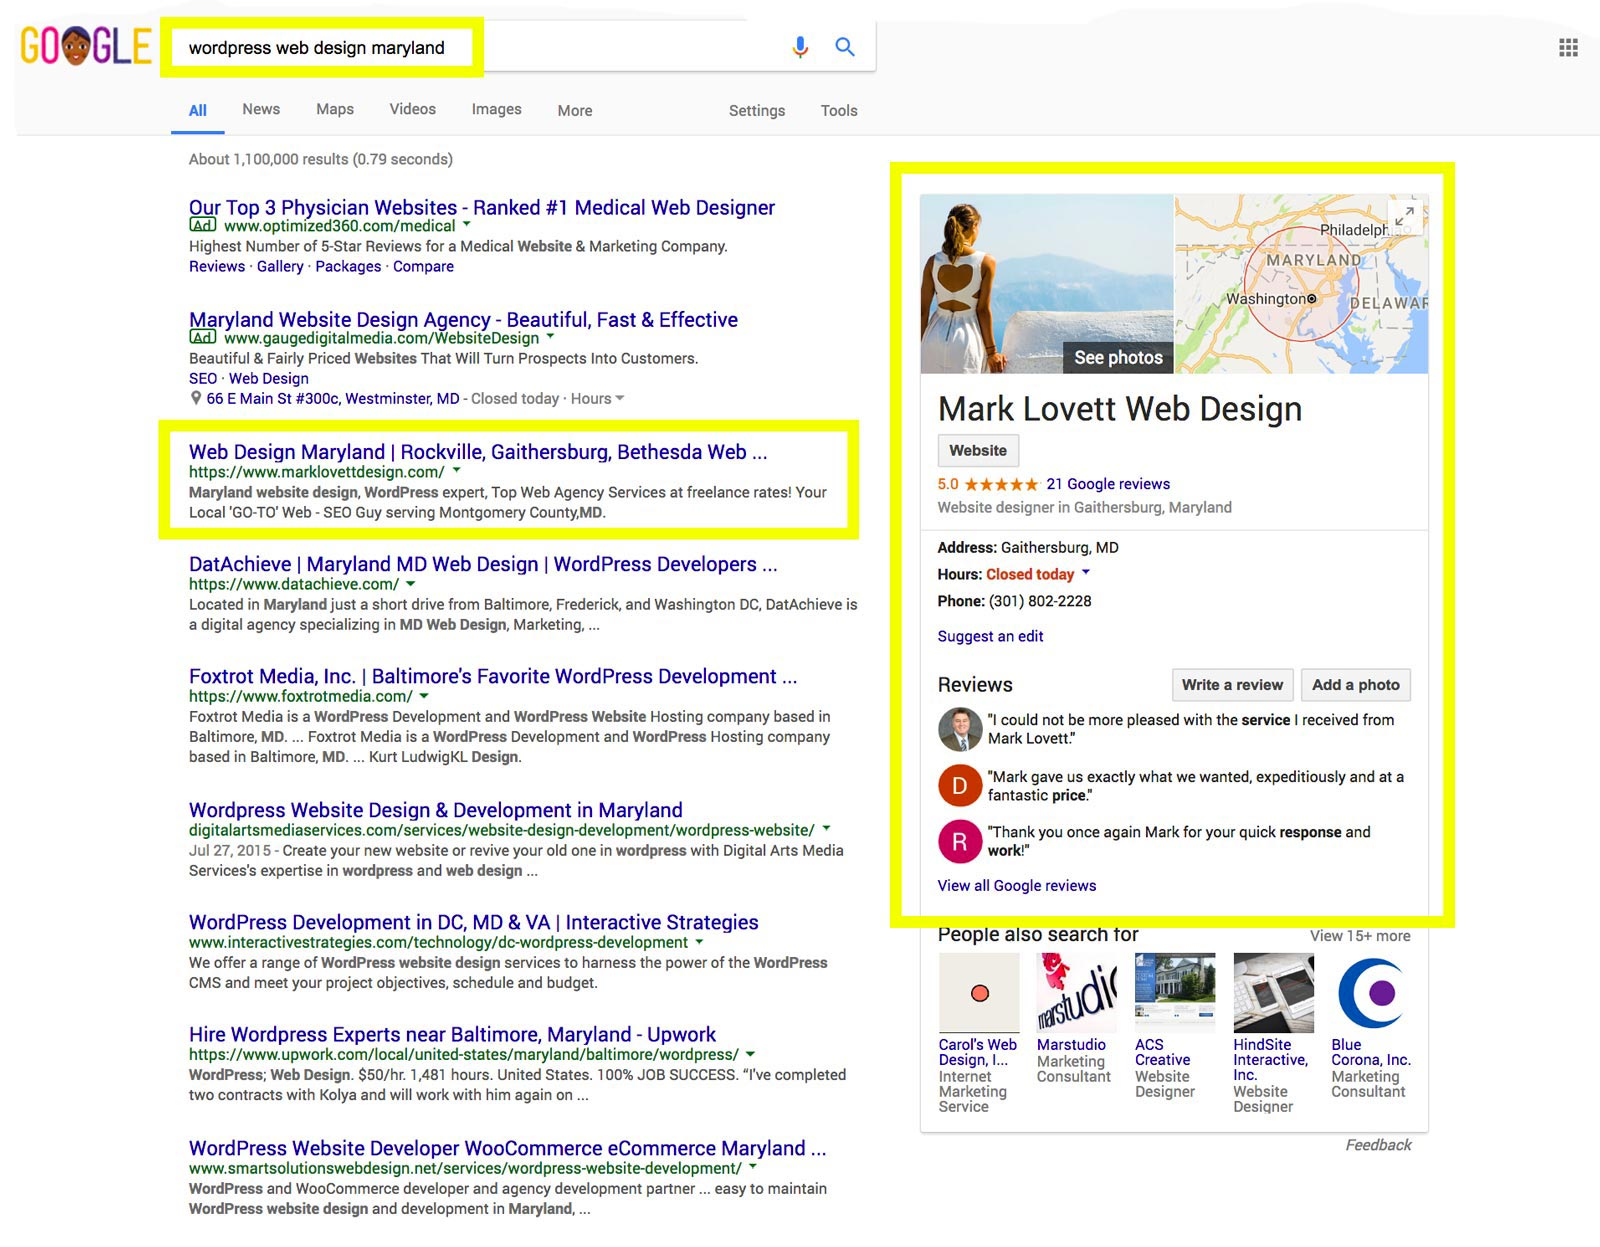 image First Page Google Search Results screenshot for wordpress web design maryland